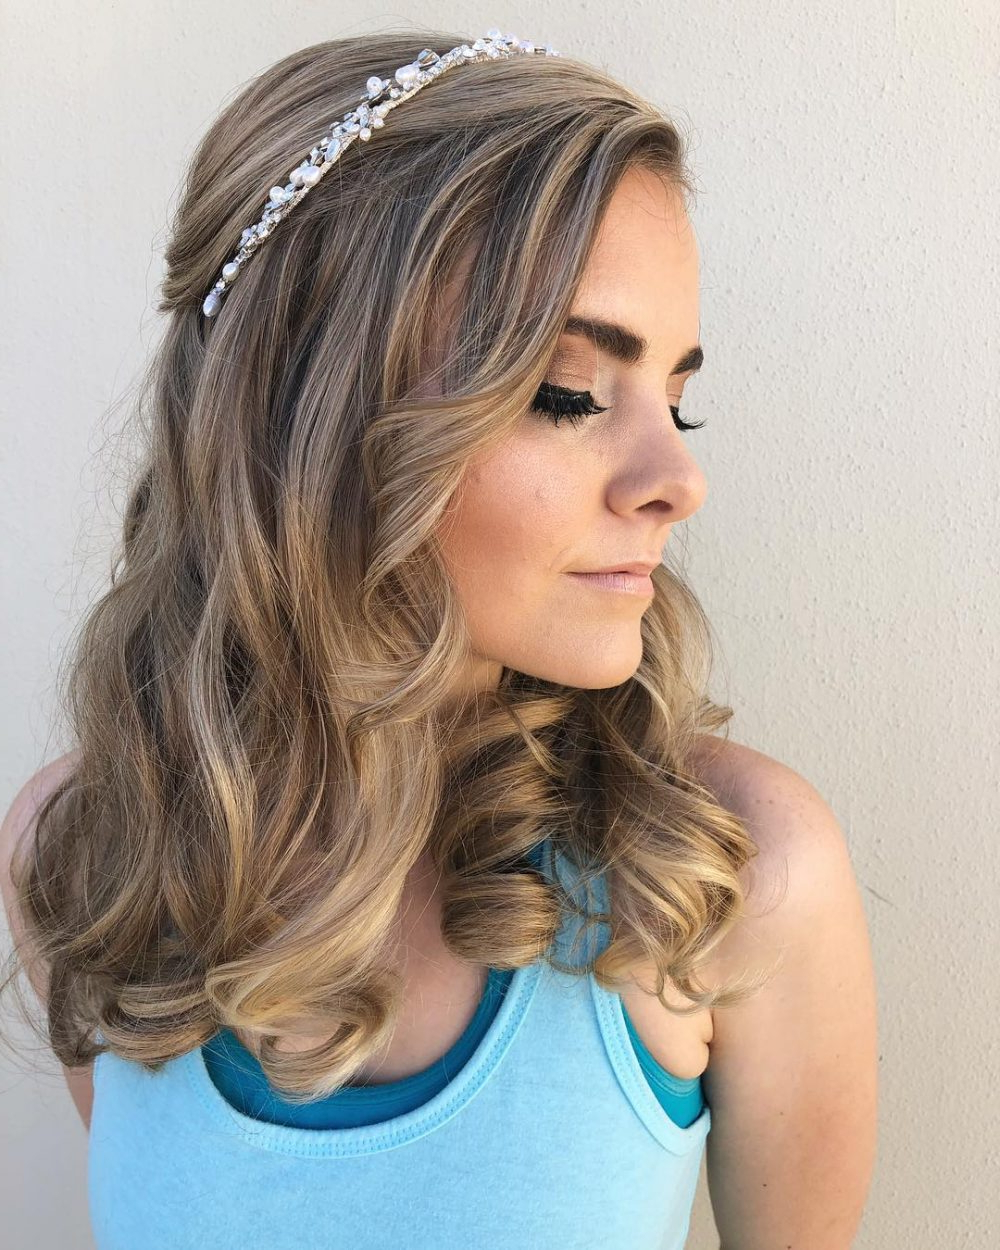 Prom Hairstyles For Medium Length Hair – Pictures And How To's Throughout Favorite Medium Hairstyles For Dances (View 15 of 20)